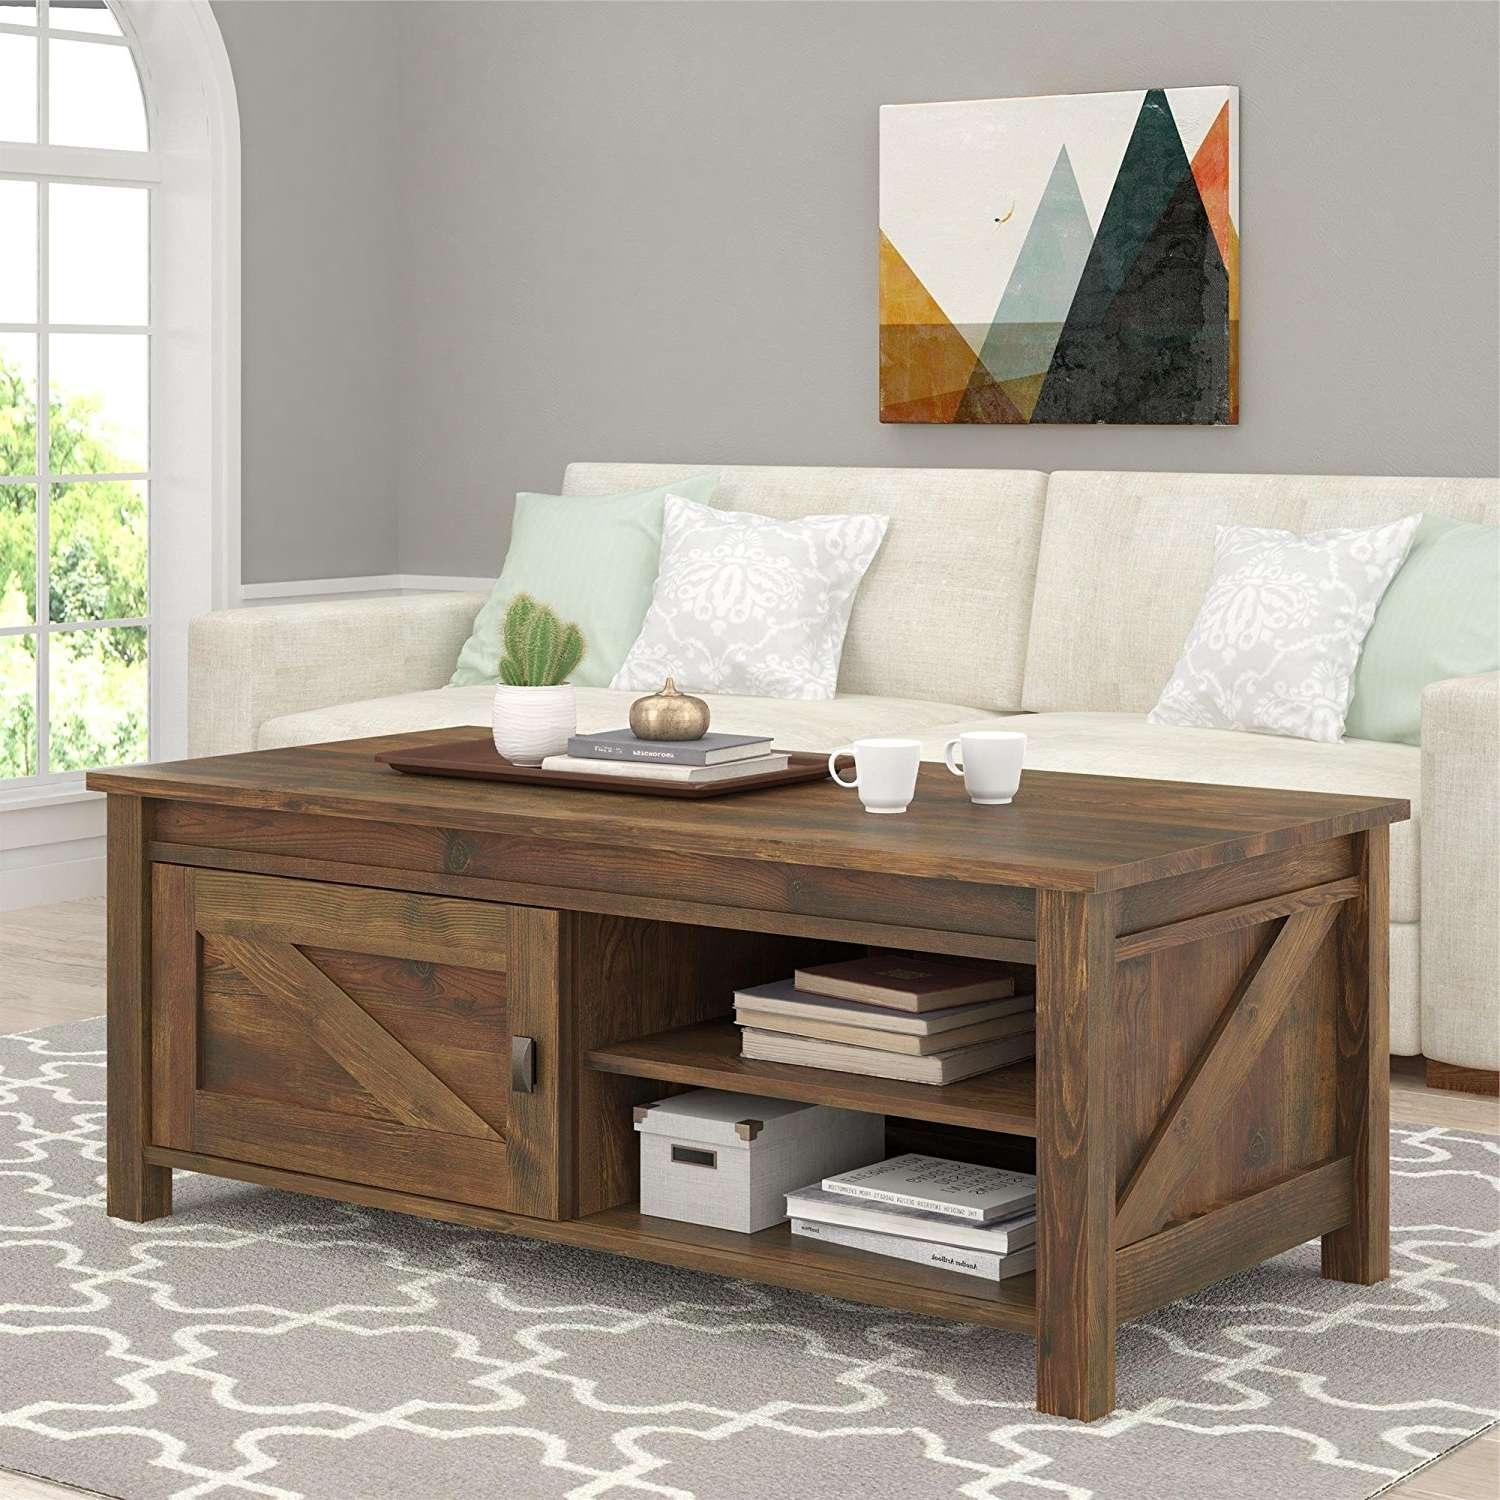 Coffee Tables : Sets With Matching Tv Stand Piece Living Room For Trendy Matching Tv Unit And Coffee Tables (View 8 of 20)